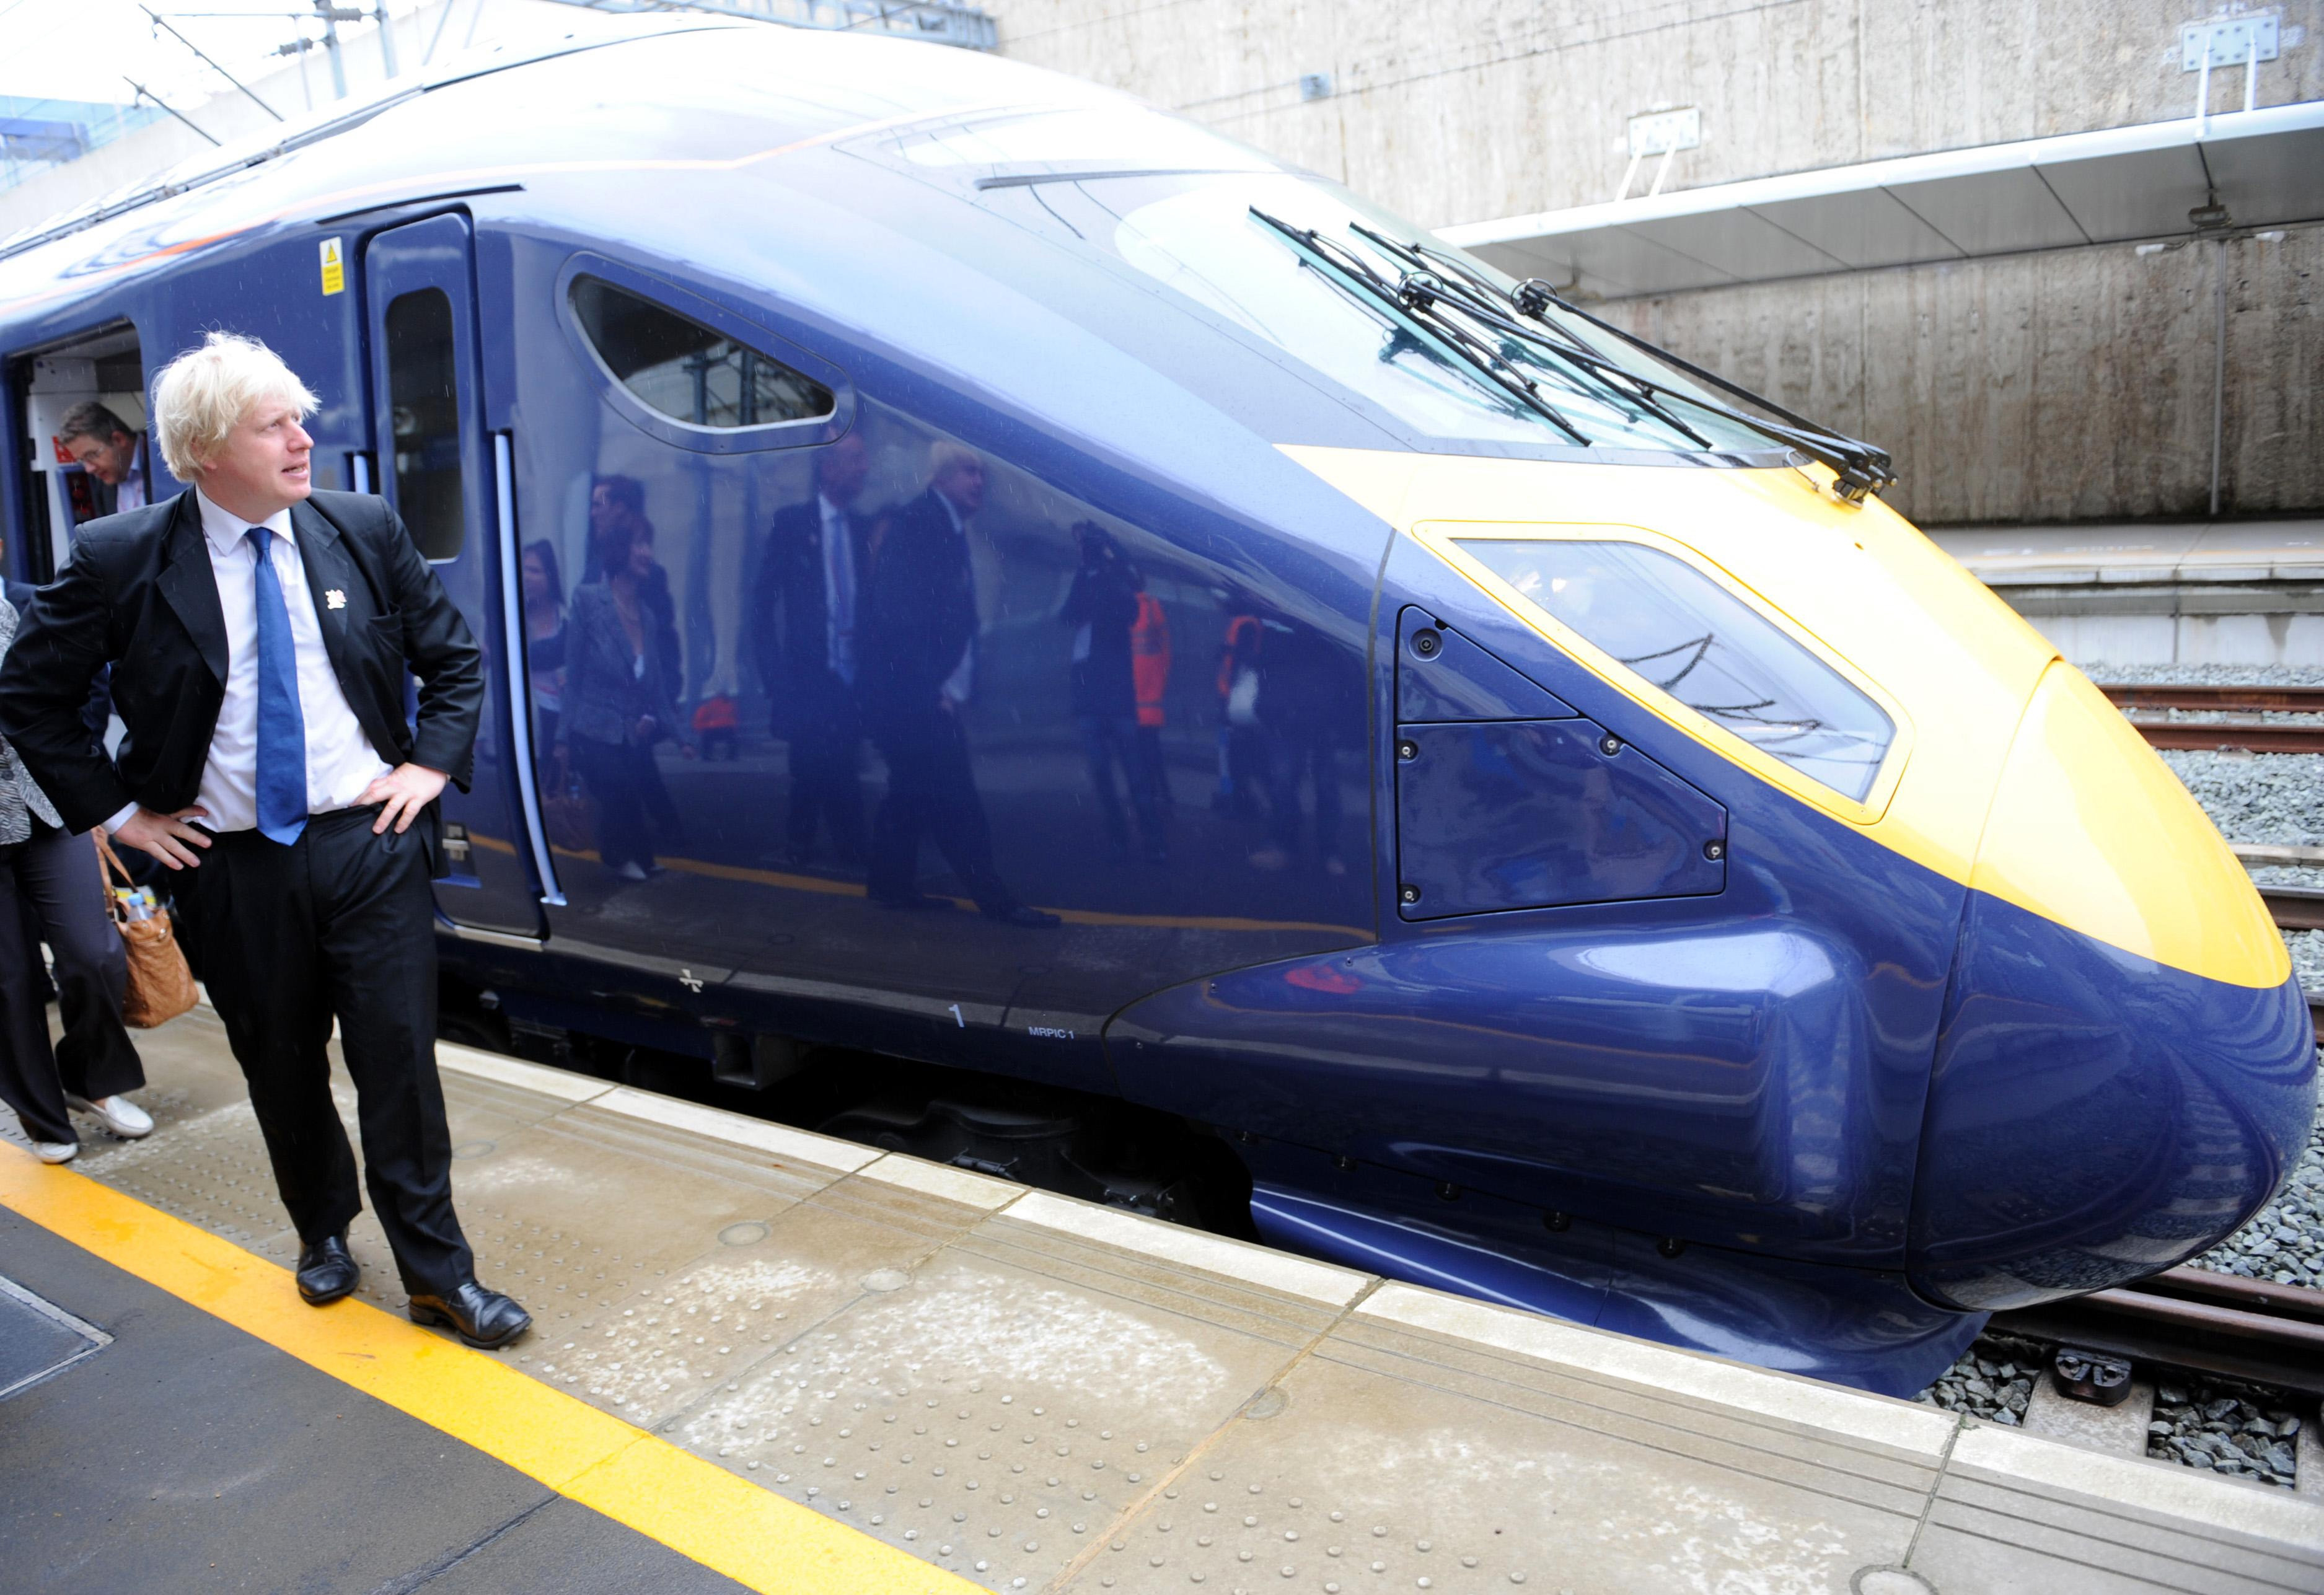 London Mayor Boris Johnson arrives on the high speed Javelin train at Stratford Station where he will view ongoing construction work at the Olympic stadium in east London.